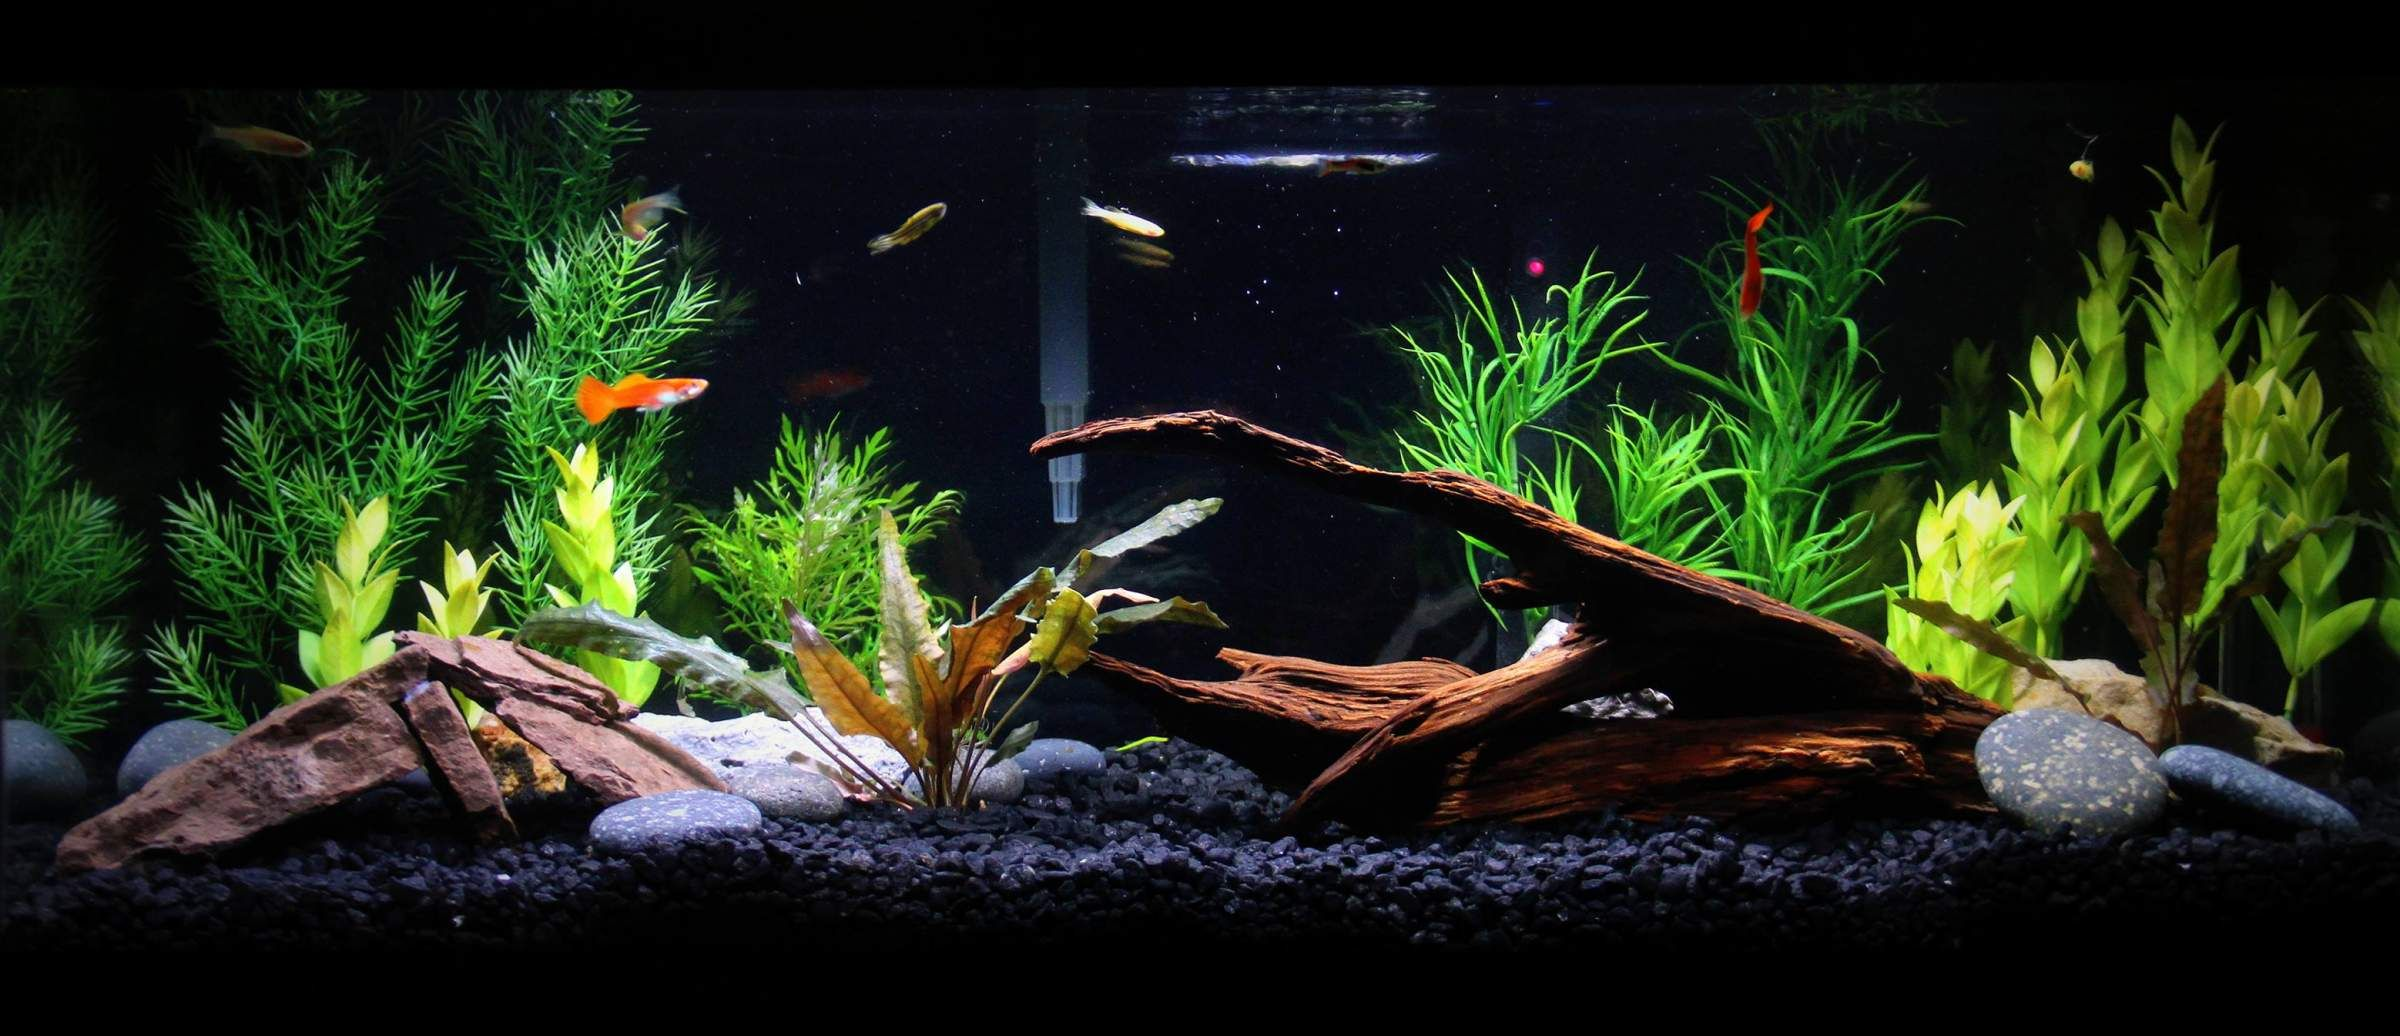 Freshwater aquarium fish orlando - 20 Gallon Aquarium Live Plants Google Search